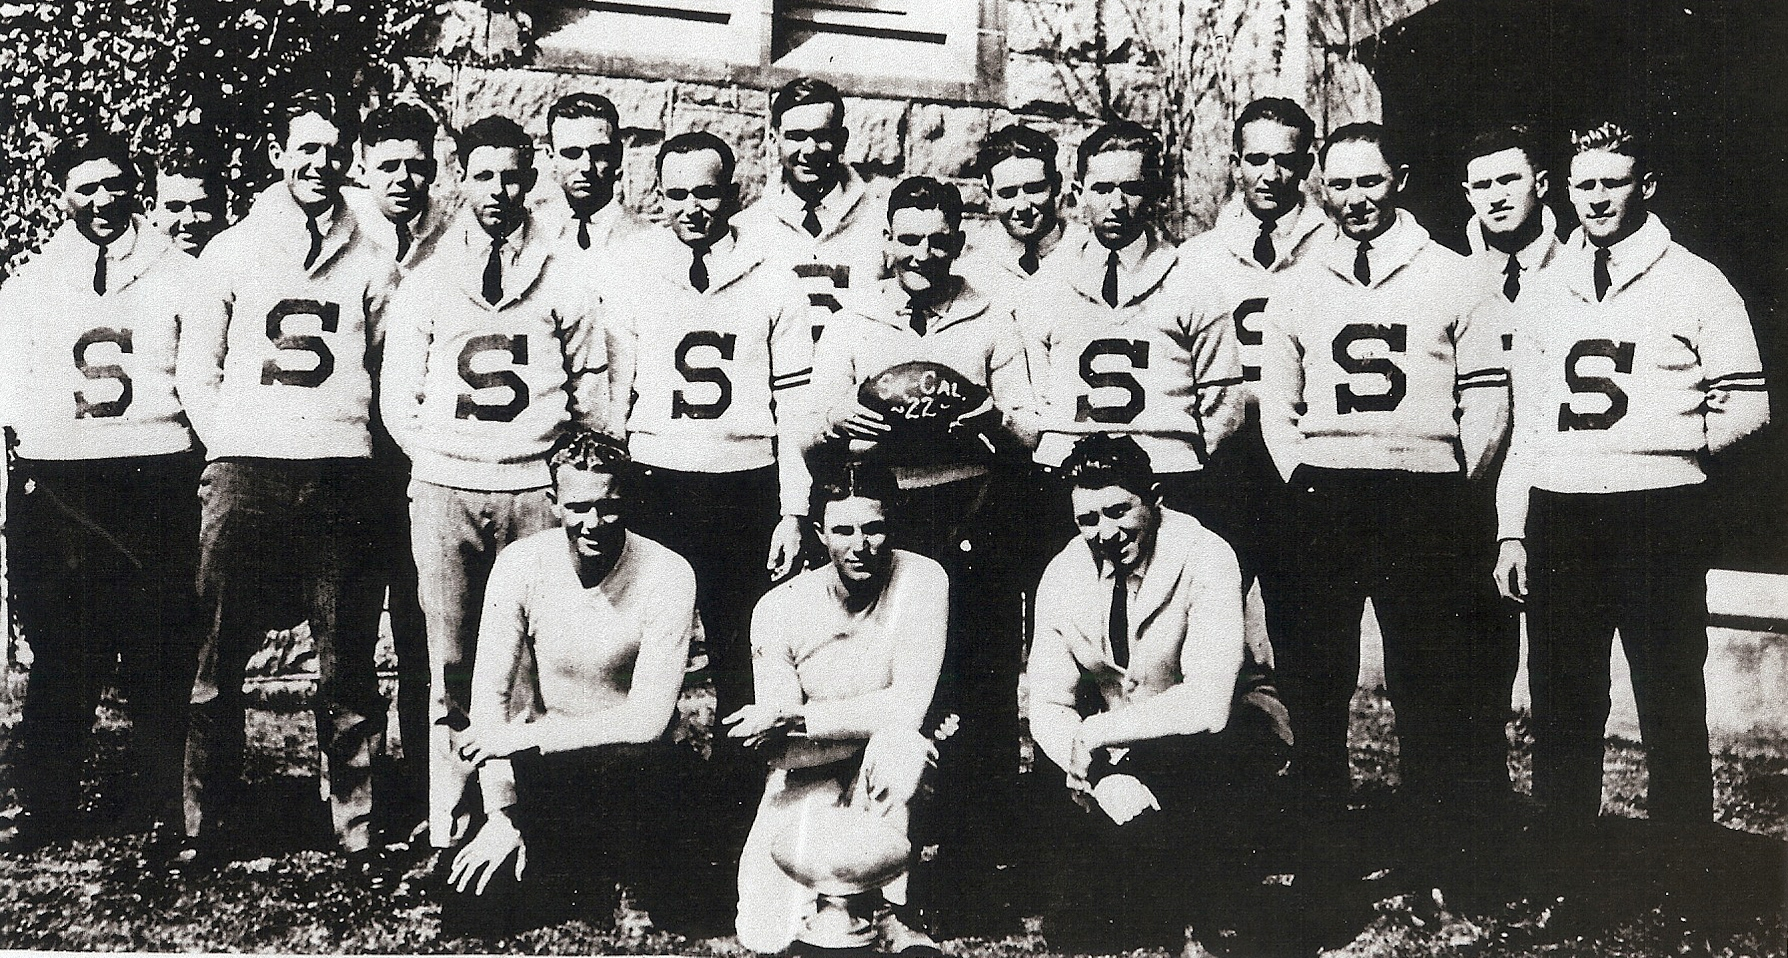 Southern California champions posed for a team picture on campus. Front row from left coaches Walter Davis, John Perry, and Claude Hippler, from left. Back, in order of appearance, from left: Coney Galindo, Jimmie West, Morris McKain, Frank O'Toole, Rex Driver, Howard Williams, Kenny Zweiner, Pete Szalinski, Norton Langford, Ed Rjuffa, Harold Fitzpatrick, Ed Giddings, Al Schevings, Jonathan Fox, Bob Perry.